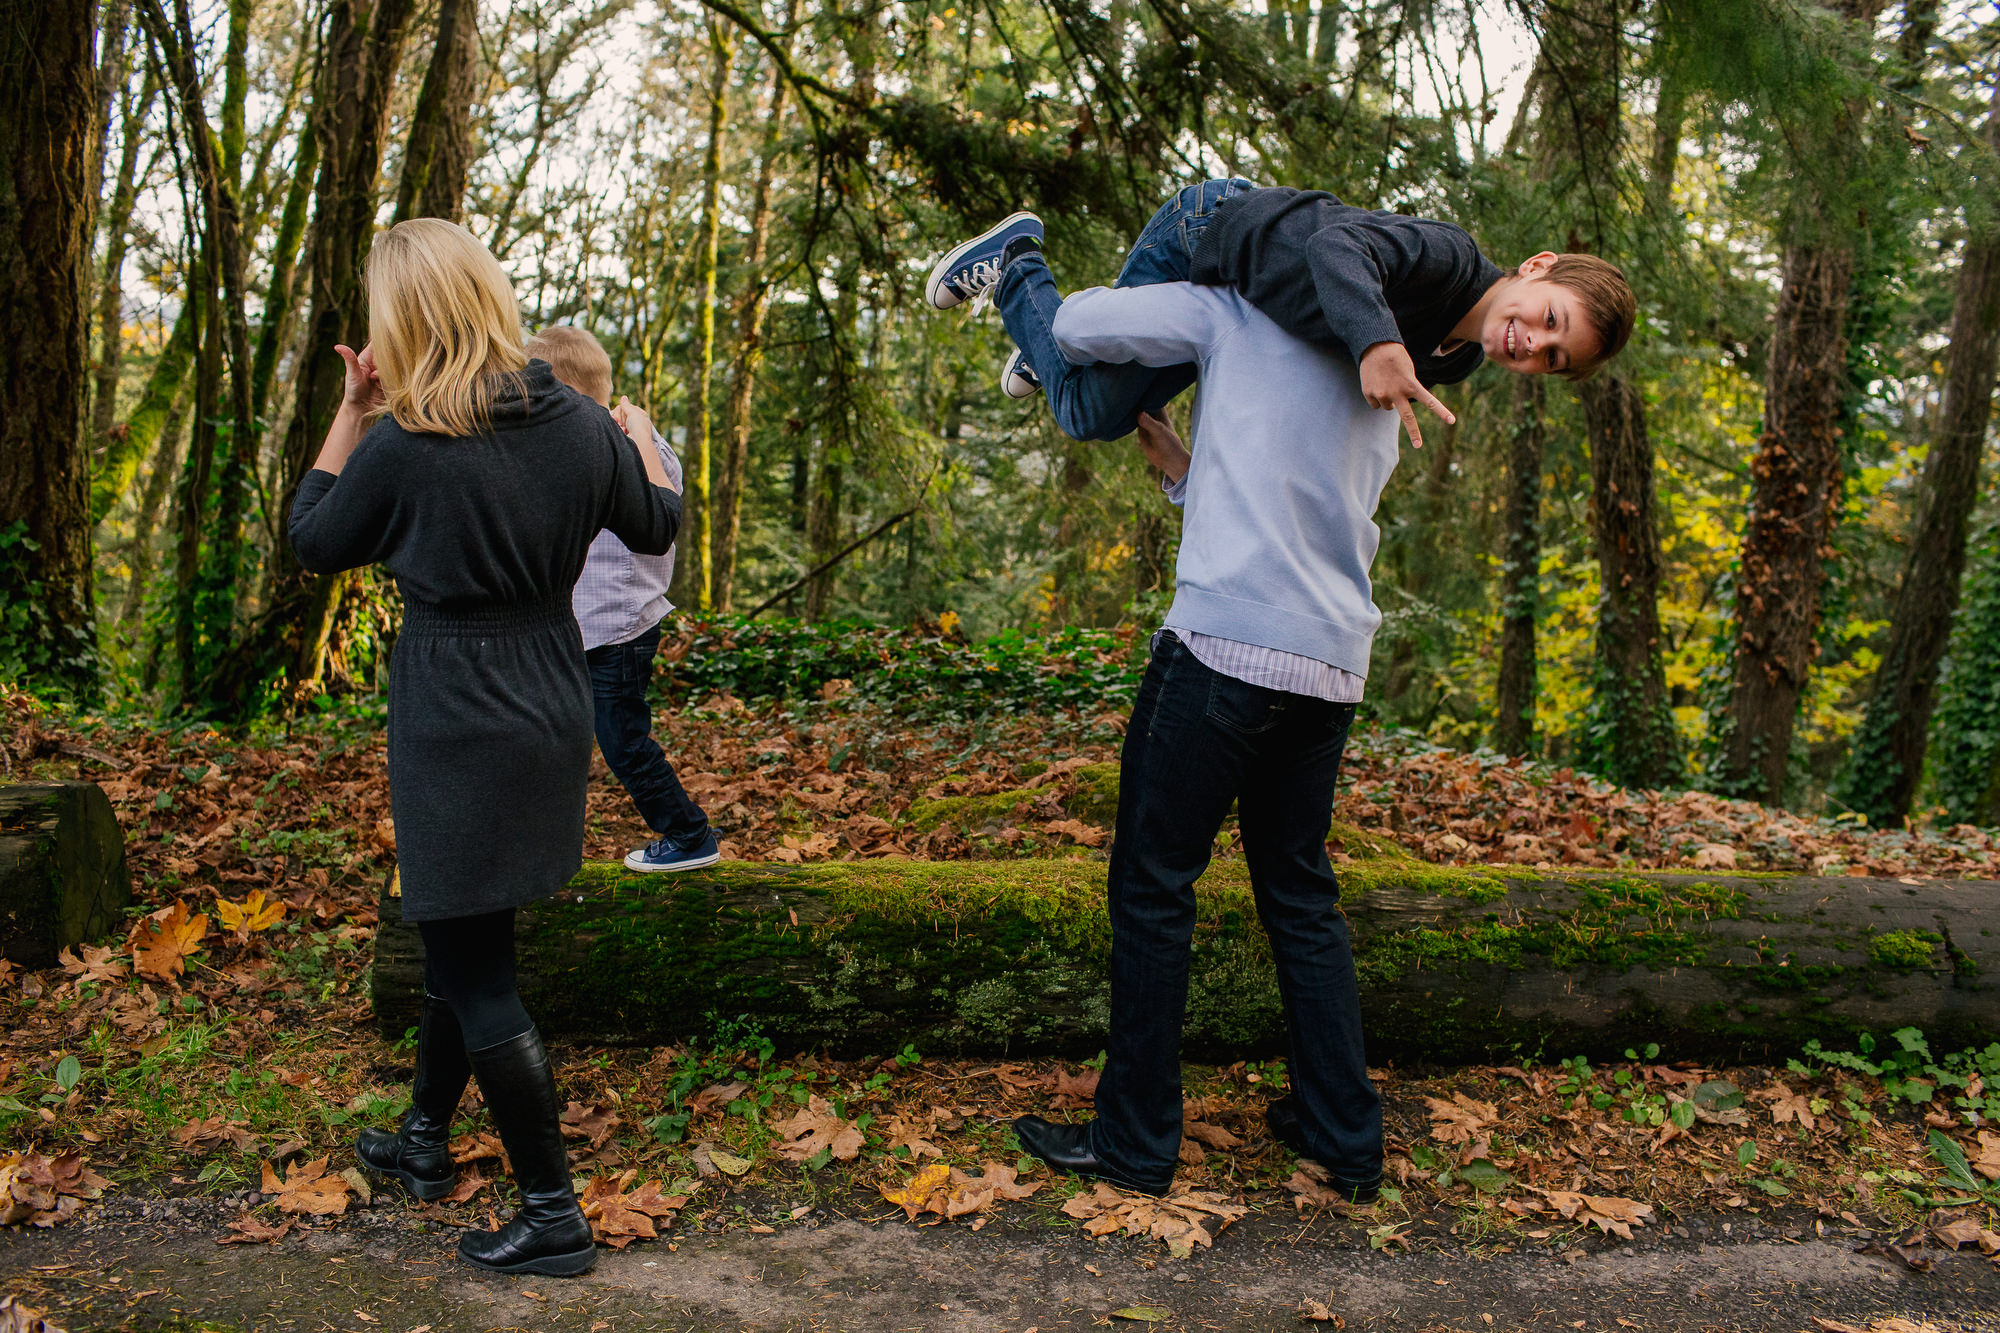 family_photography_lifestyle_images_pittock_mansion007